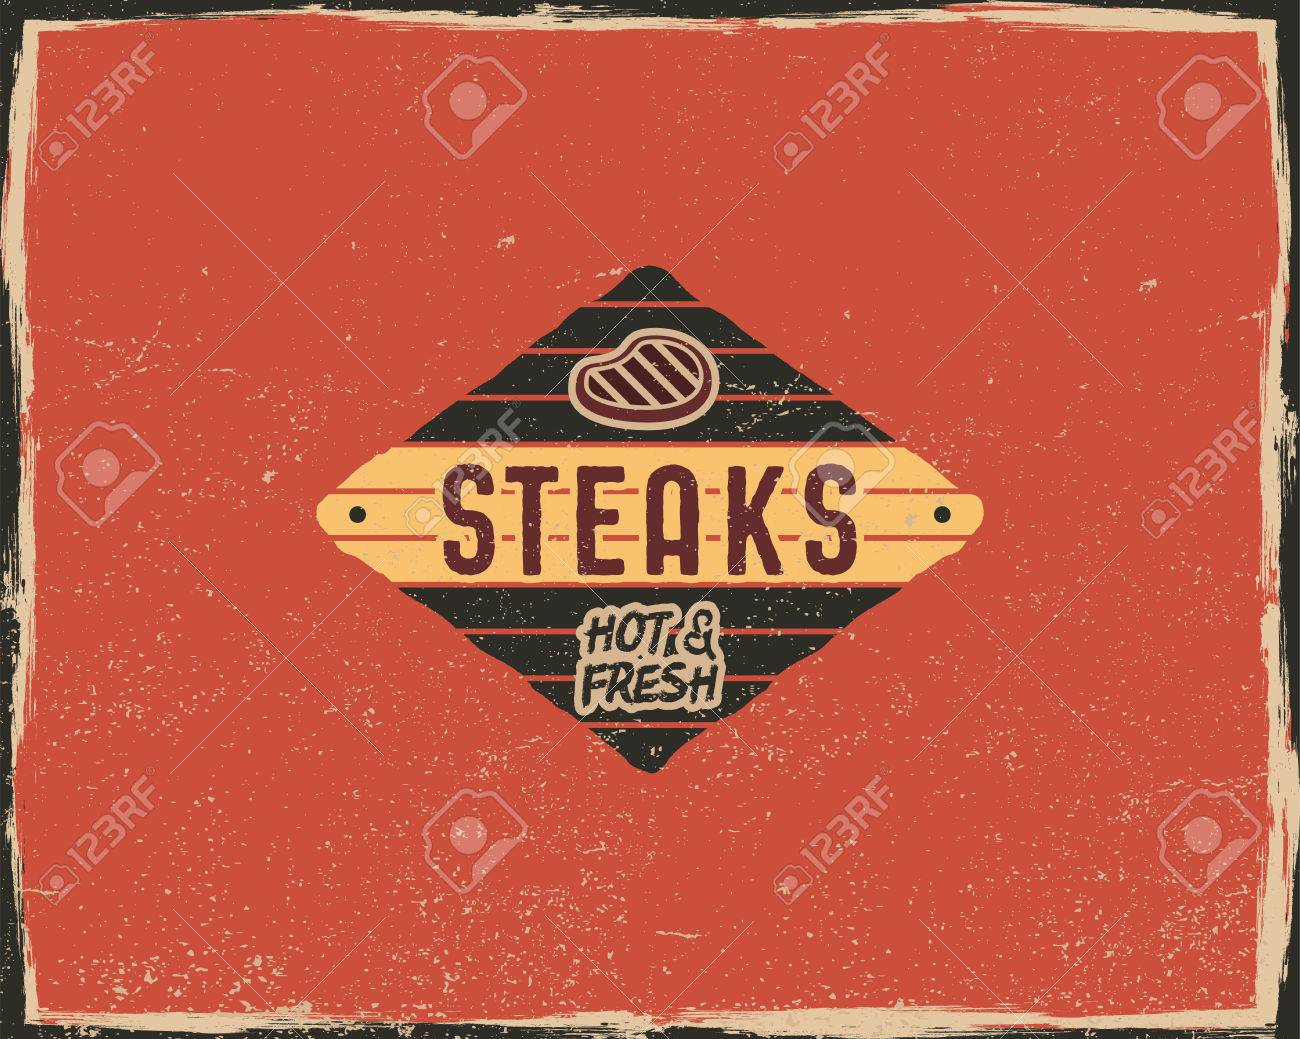 steak house typography poster template in retro old style offset